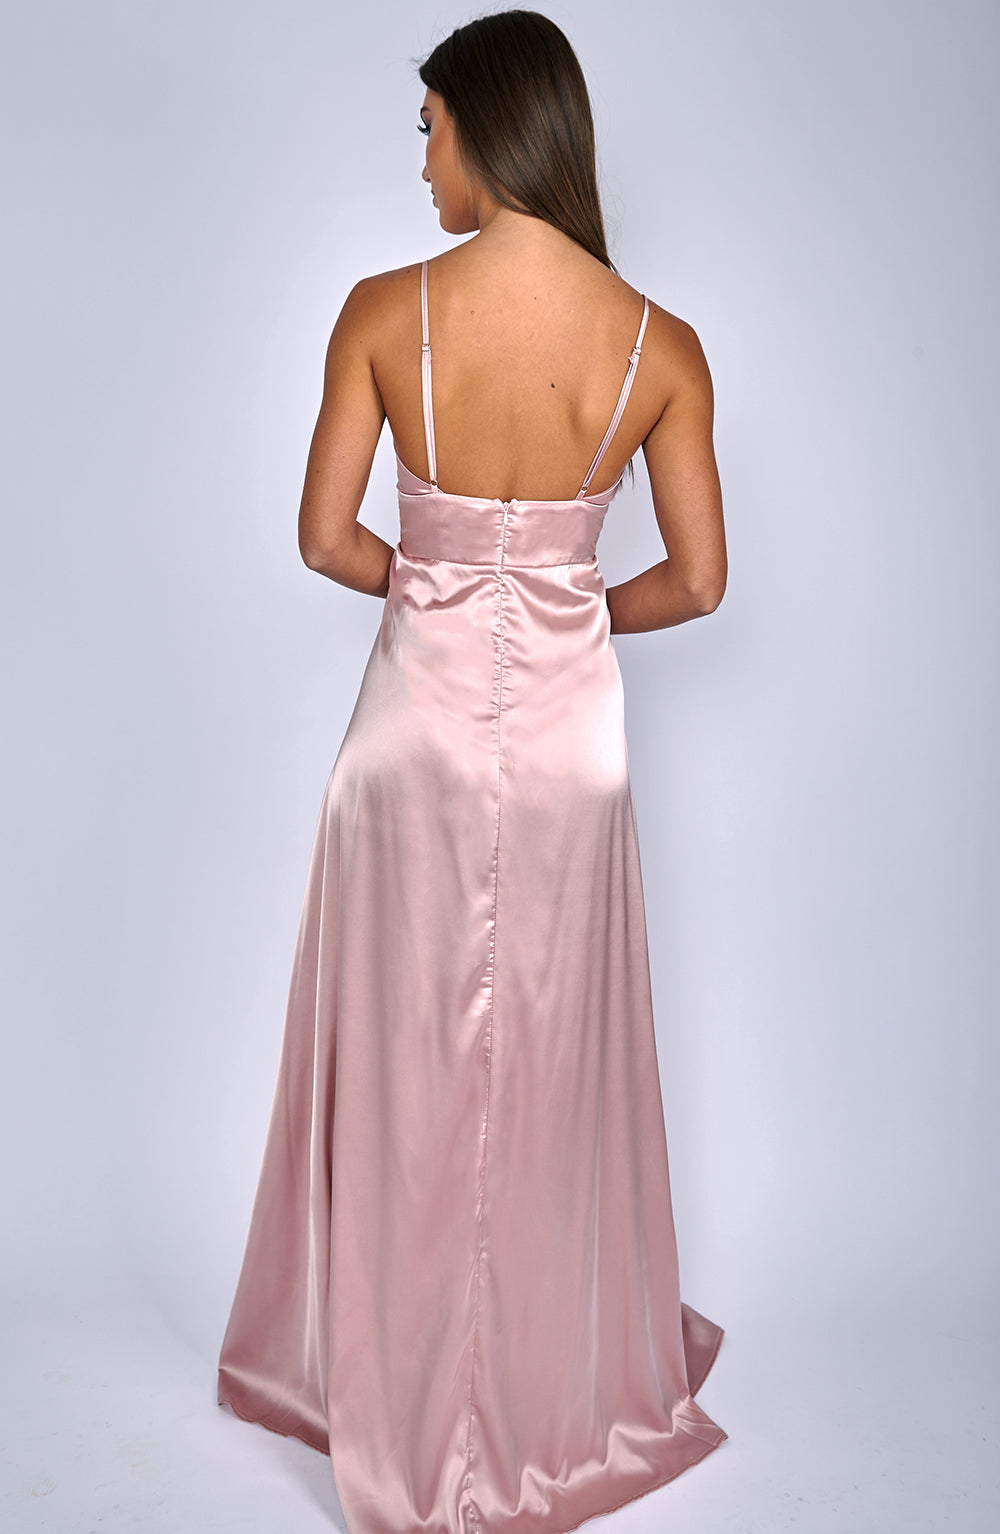 Slipped Through Maxi Dress - Dusty Pink